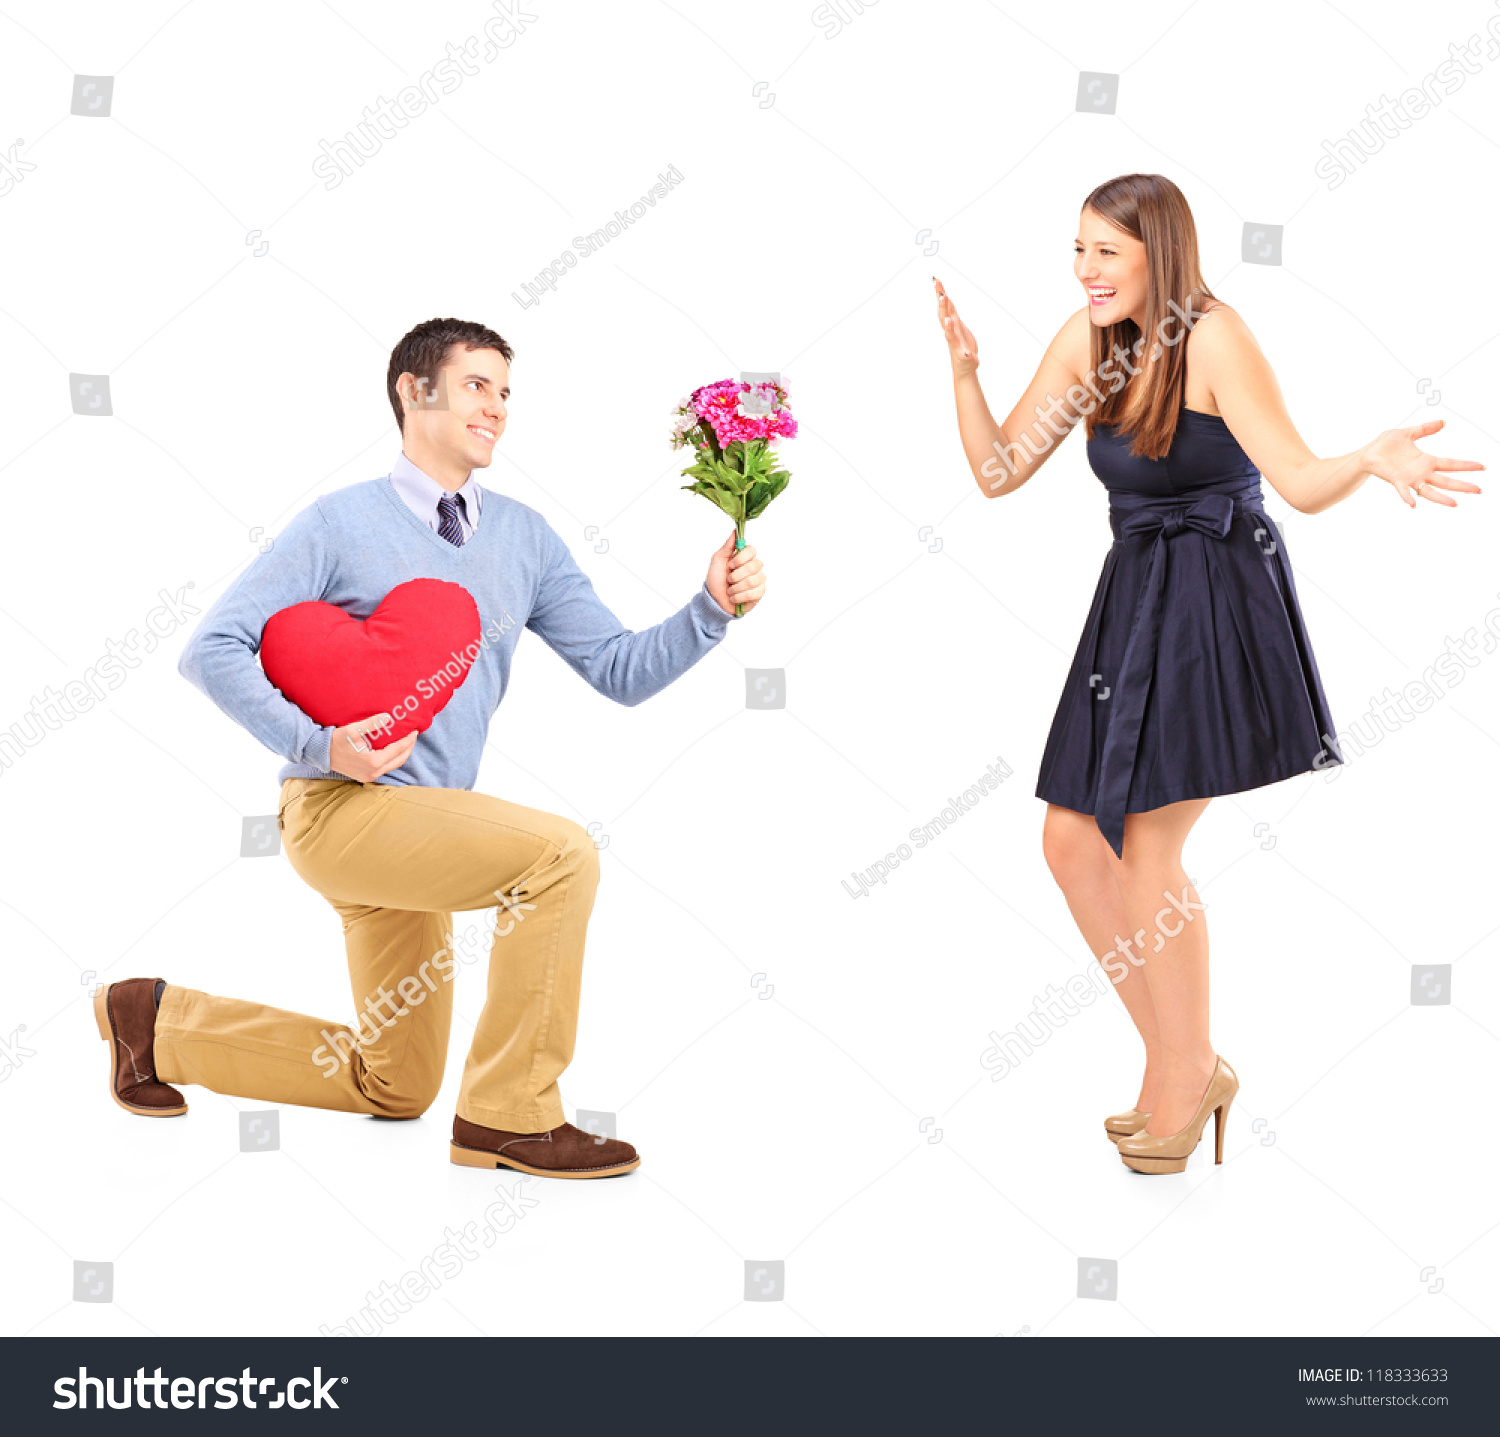 Giving a guy space while dating